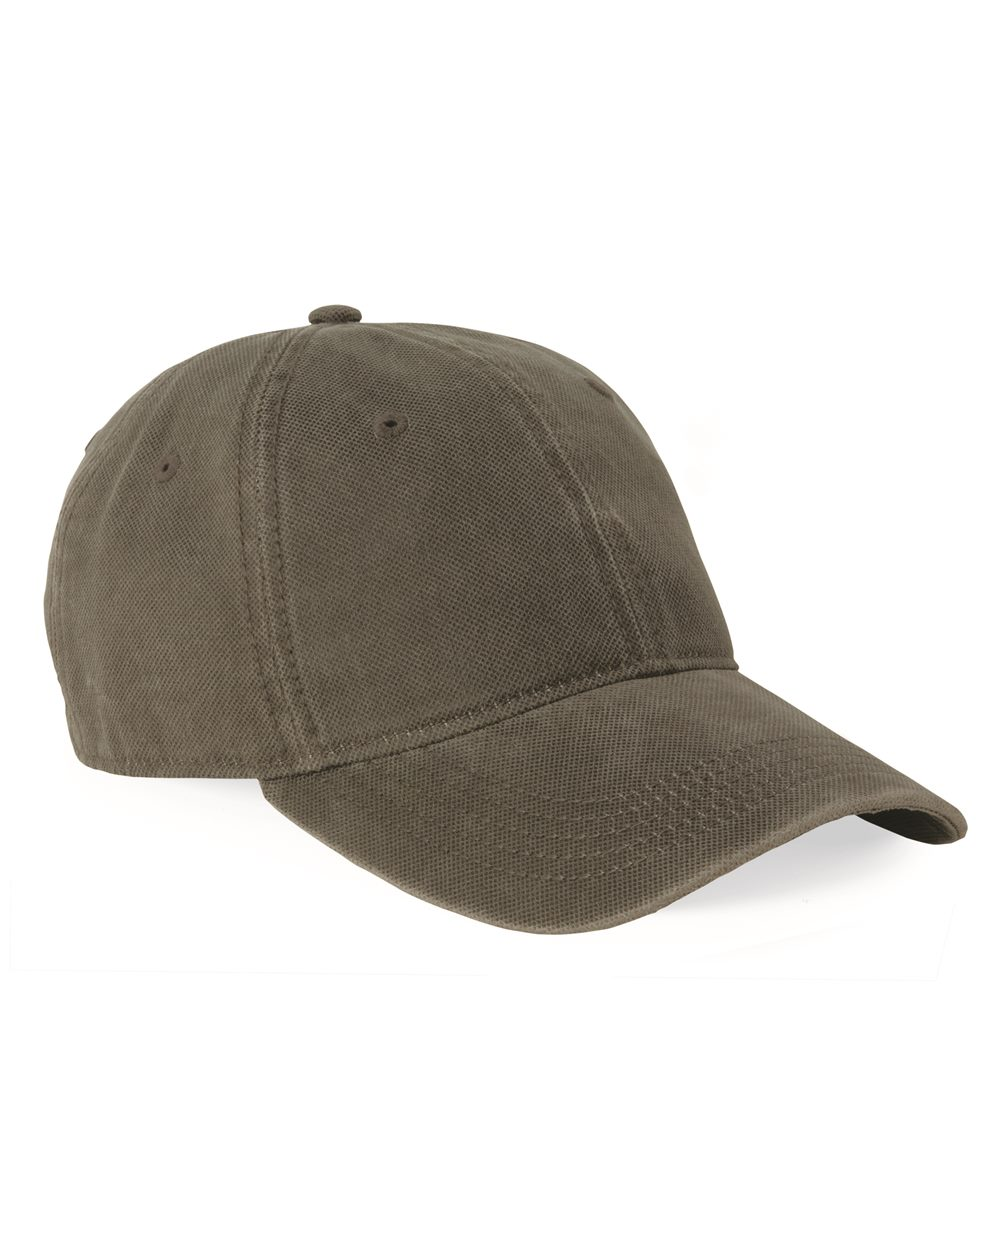 DRI DUCK 3748 - Foundry Waxy Canvas Cap